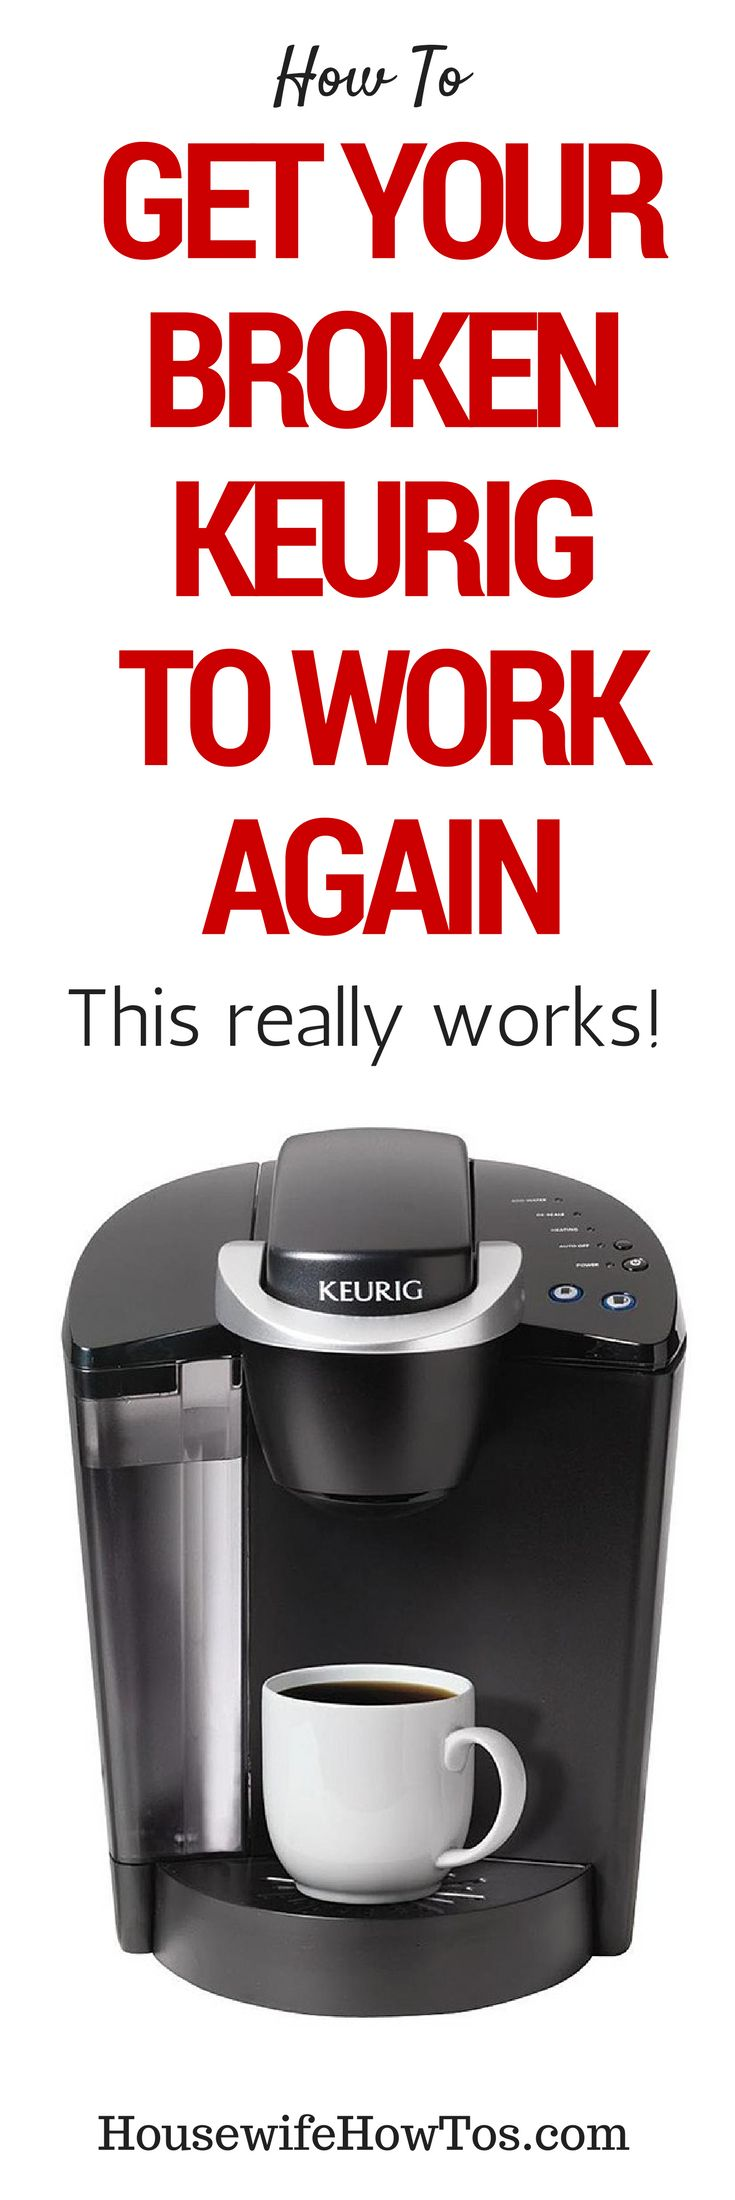 Coffee Maker How Stuff Works : 17 Best ideas about Keurig Cleaning on Pinterest Descale keurig, Keurig and Deep cleaning